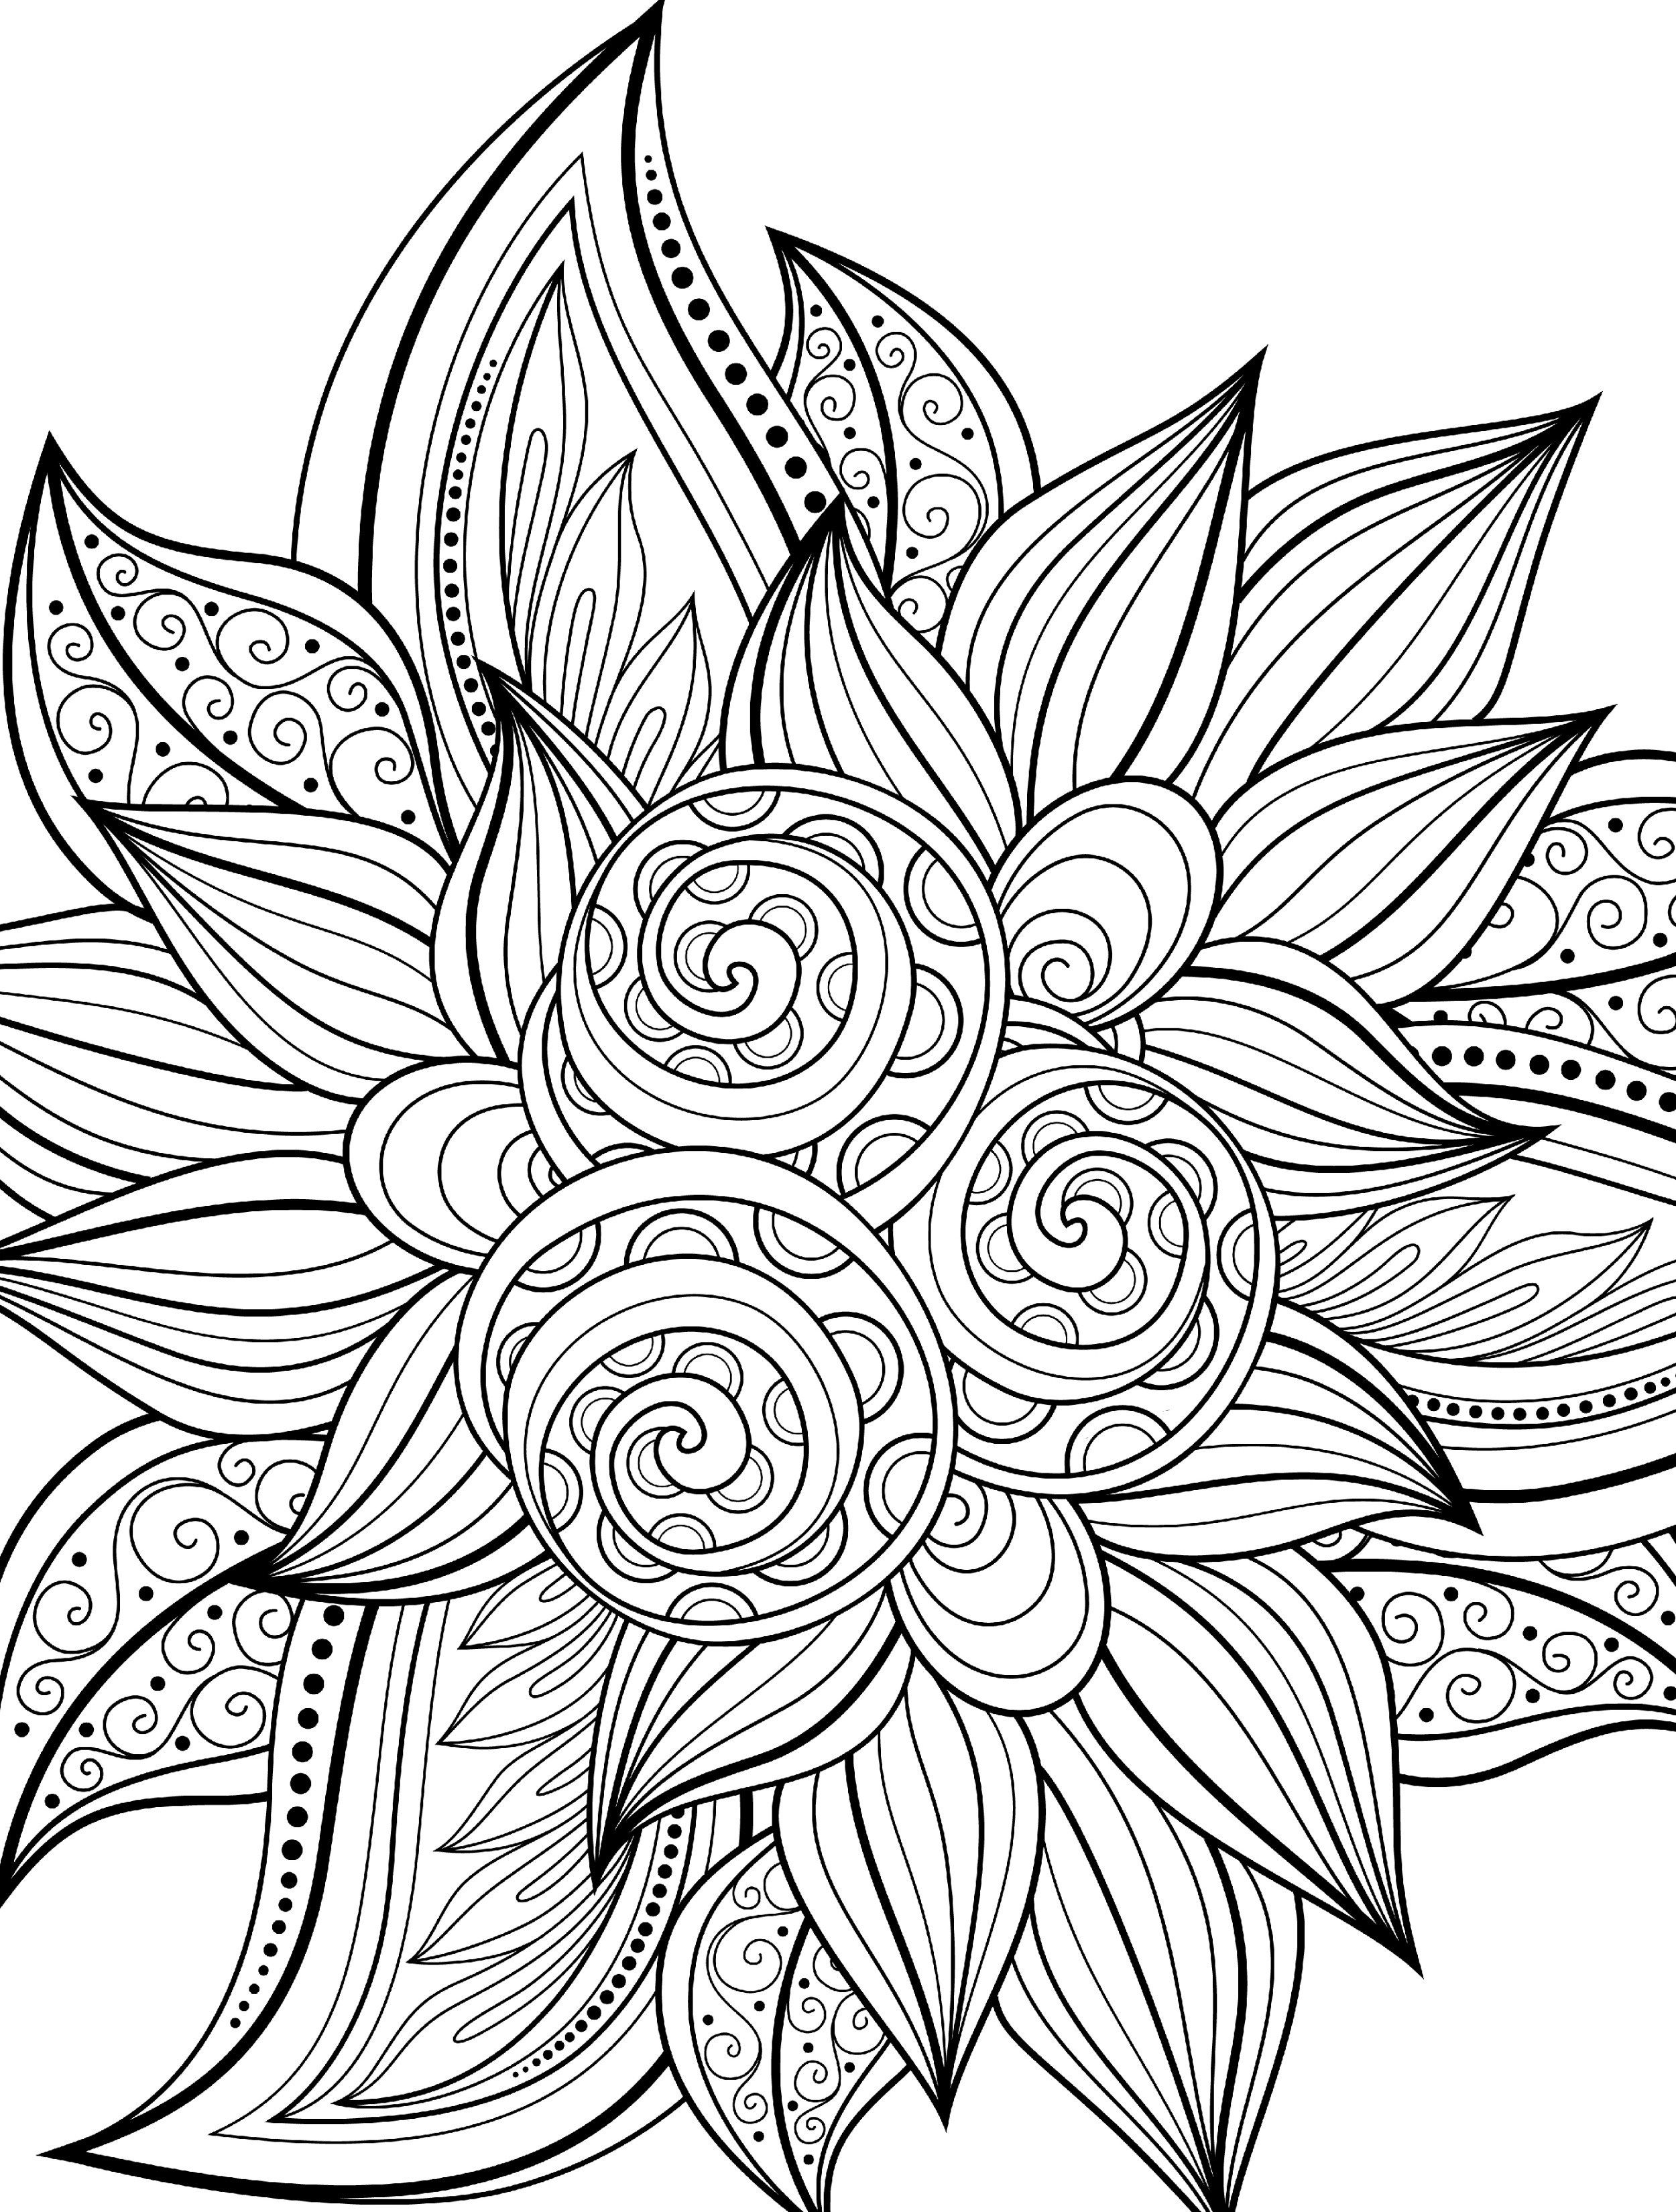 Printable adult thanksgiving coloring sheet - 10 Free Printable Holiday Adult Coloring Pages